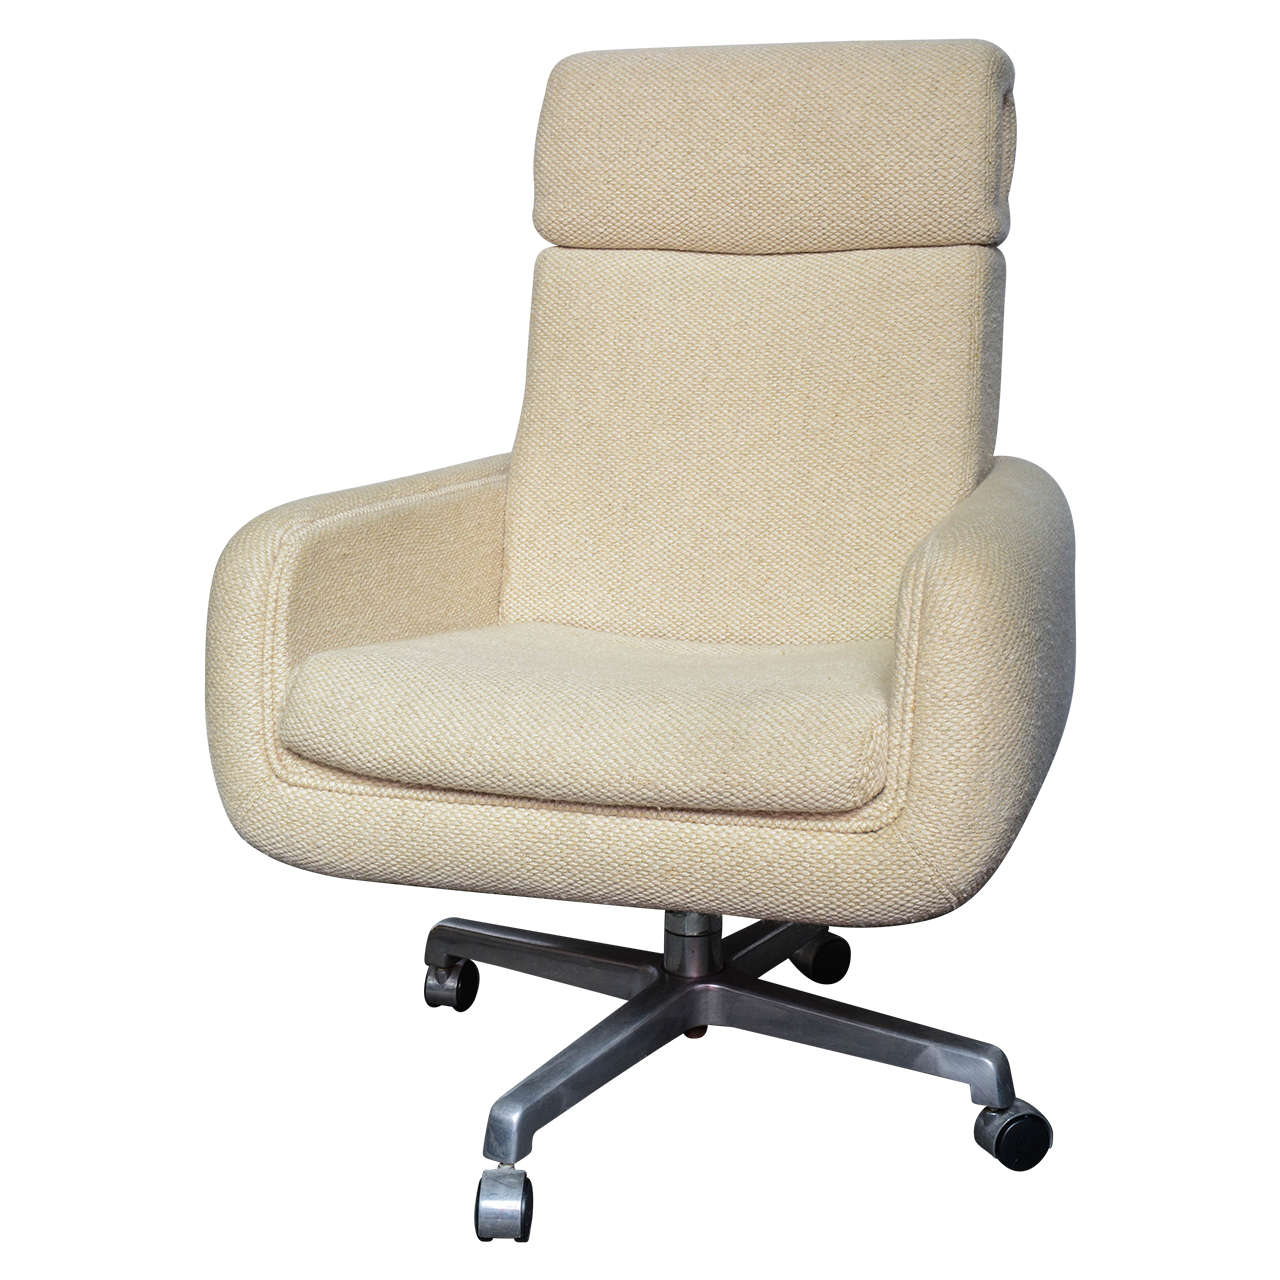 MId-Century Tall Industrial Office Chair By Doerner